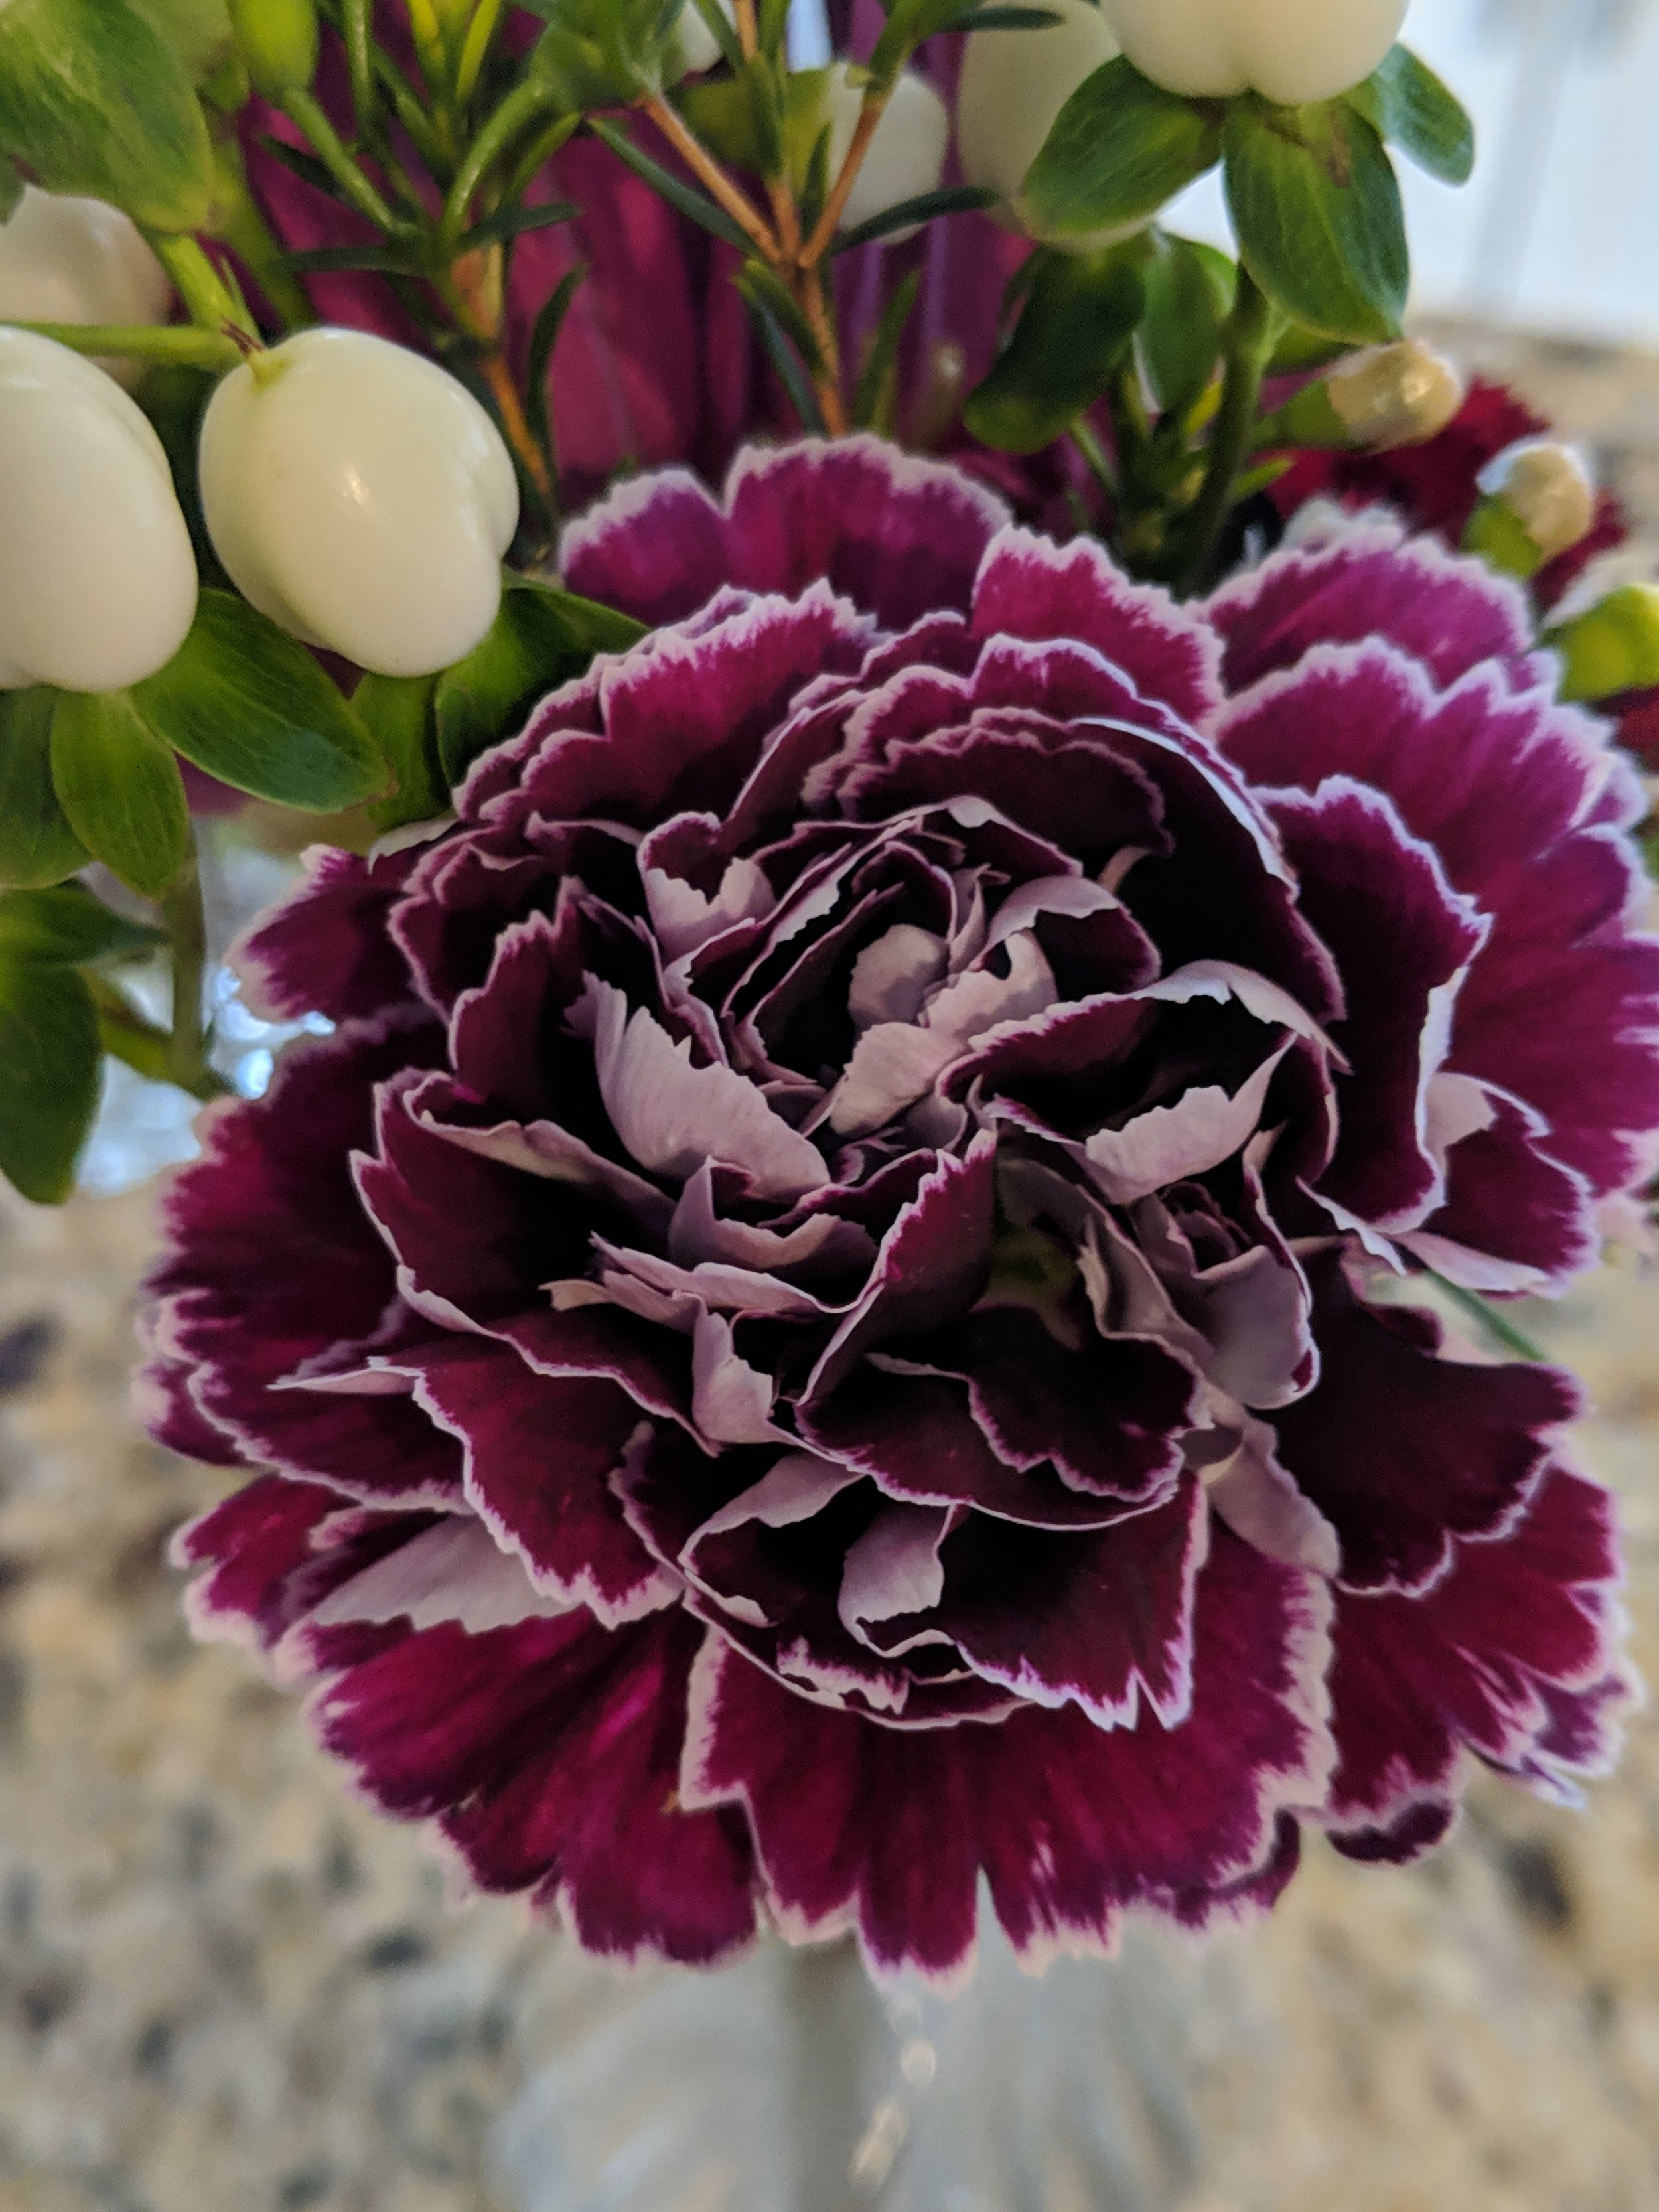 10 Different Types of Carnations (Everything You Need To